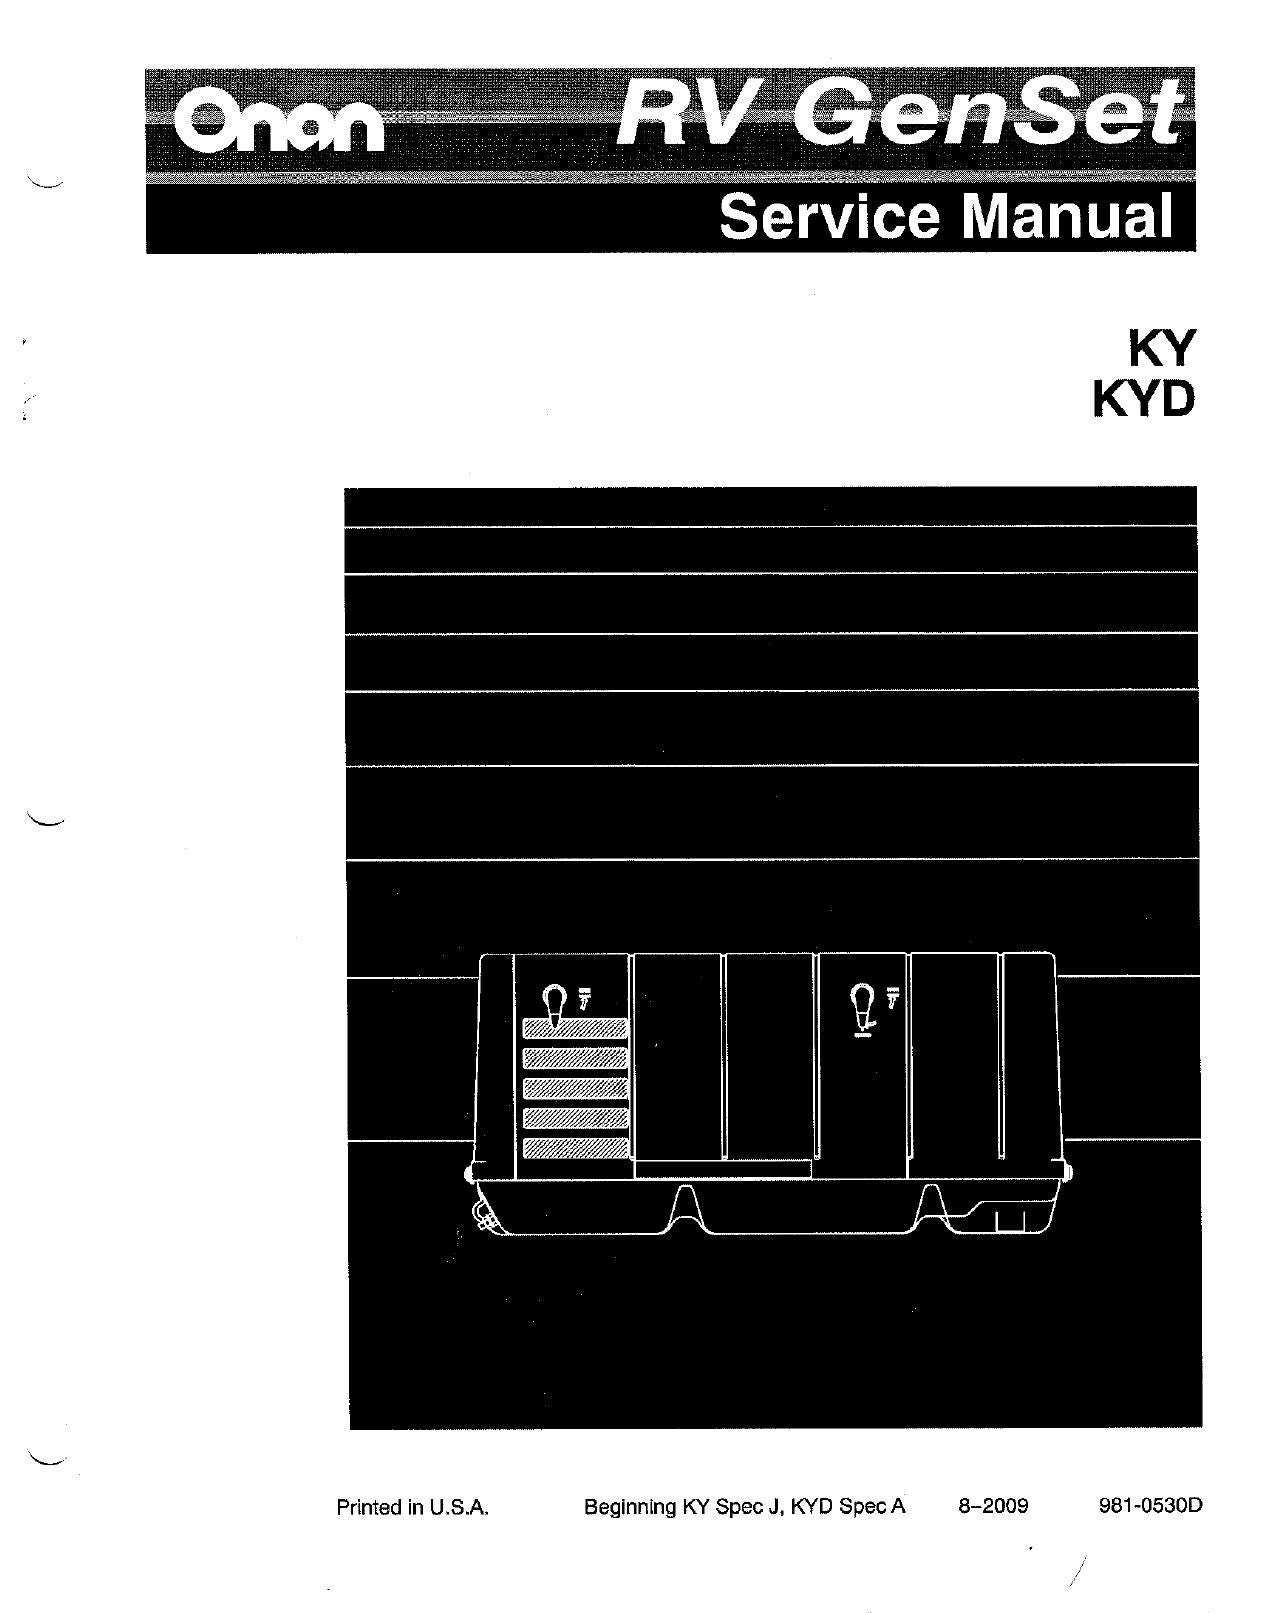 onan cummins genset ky kyd 4kw service manual by ripper jim issuu Onan Emerald 1 Genset Wiring Diagram Onan Emerald 1 Genset Wiring Diagram #84 onan emerald 1 genset wiring diagram